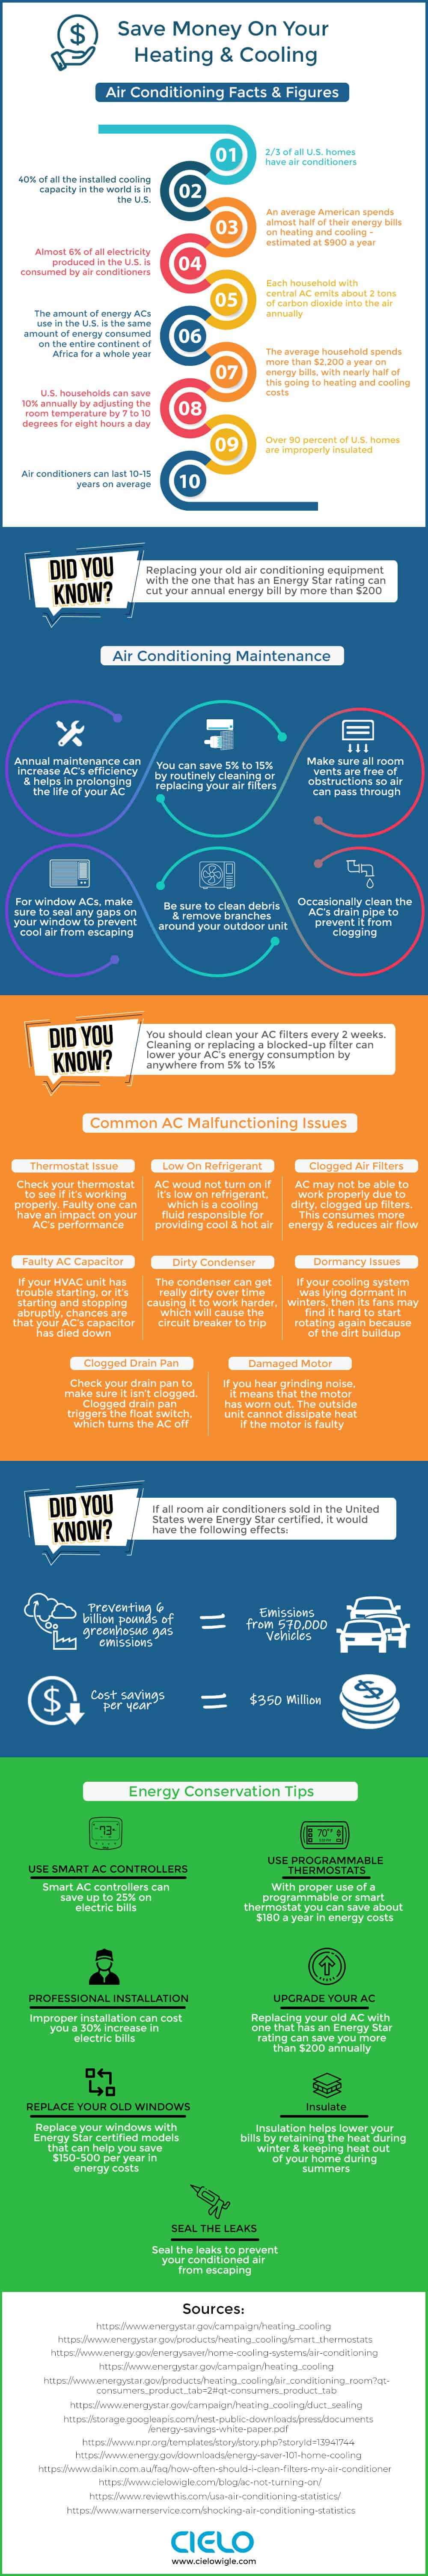 Save money on air conditioning infographic with air conditioning facts, figures, stats